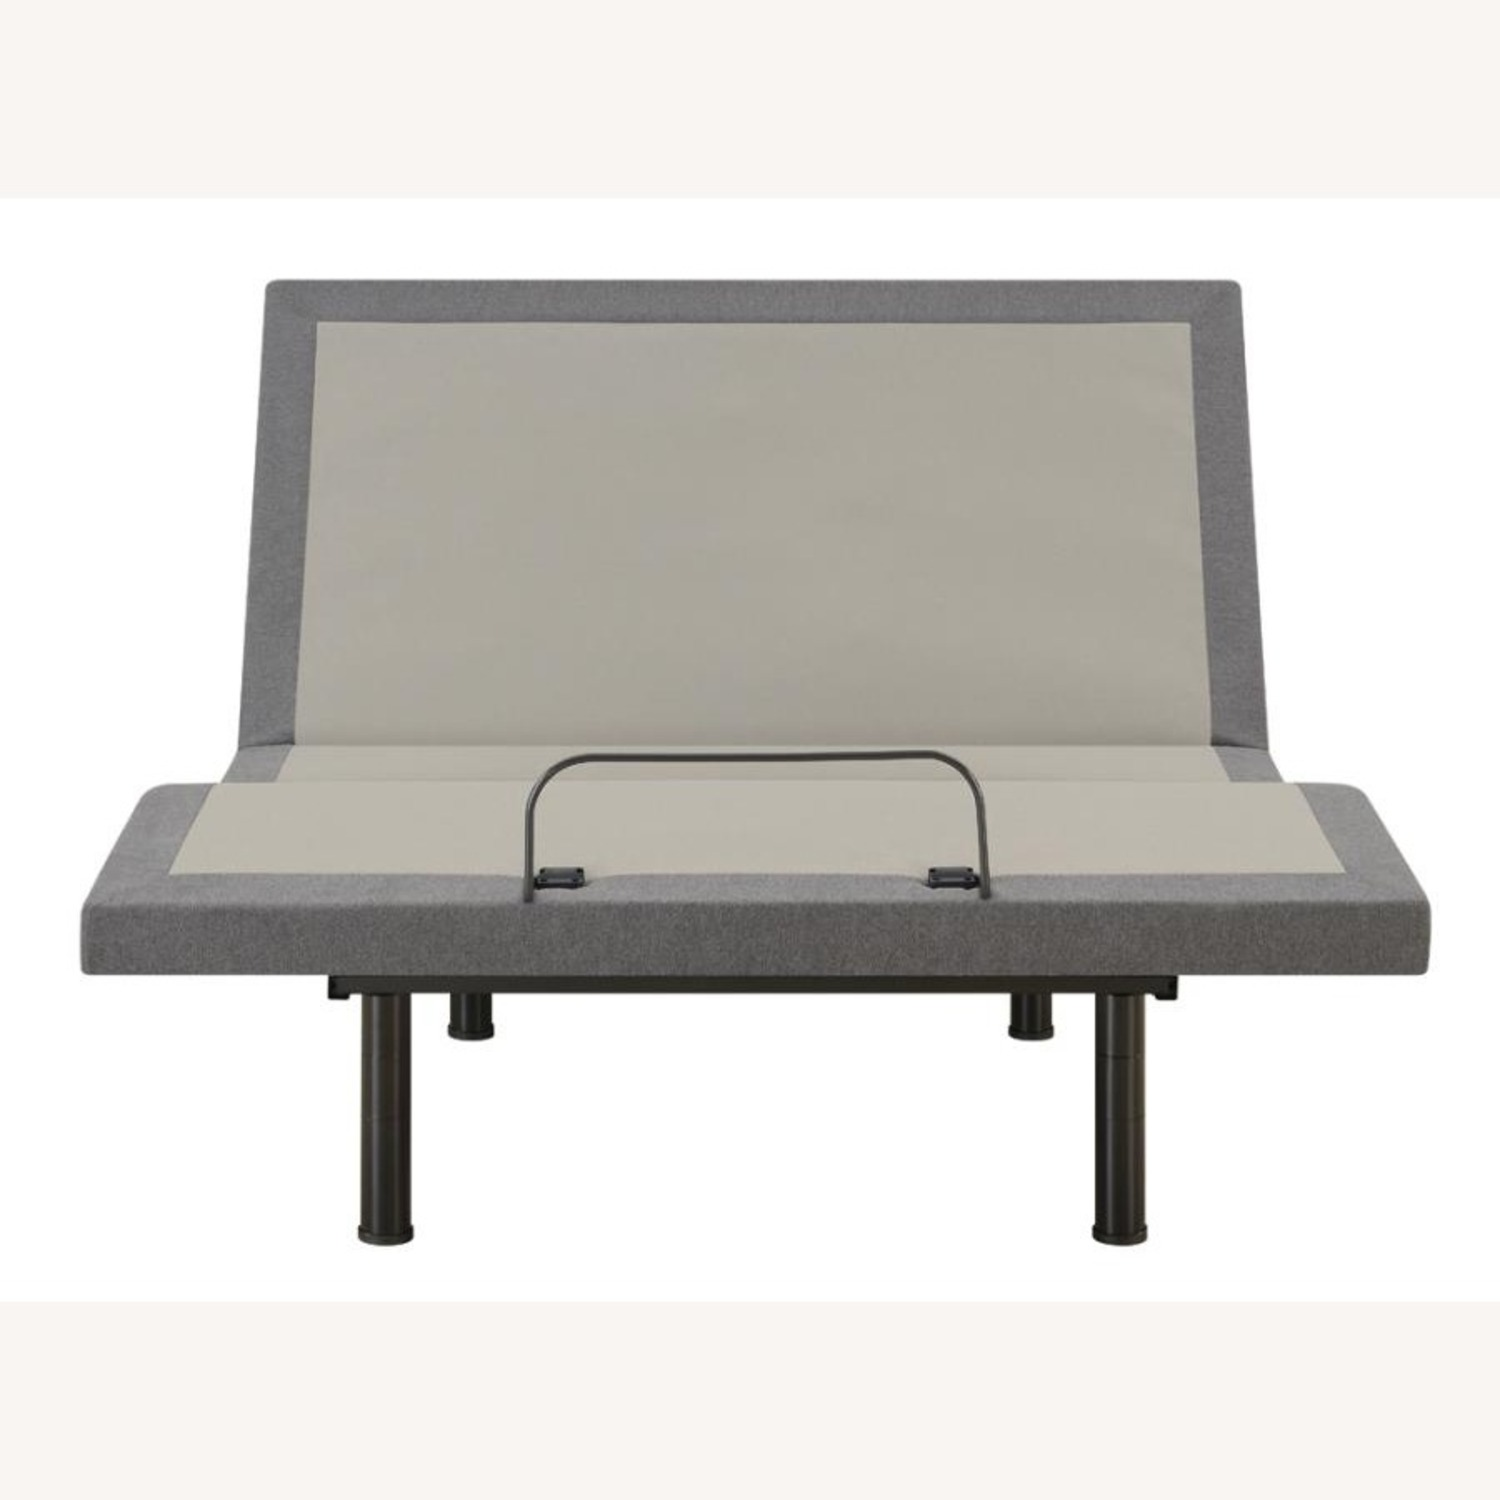 Adjustable Queen Bed W/ Dual USB Charging Station - image-2